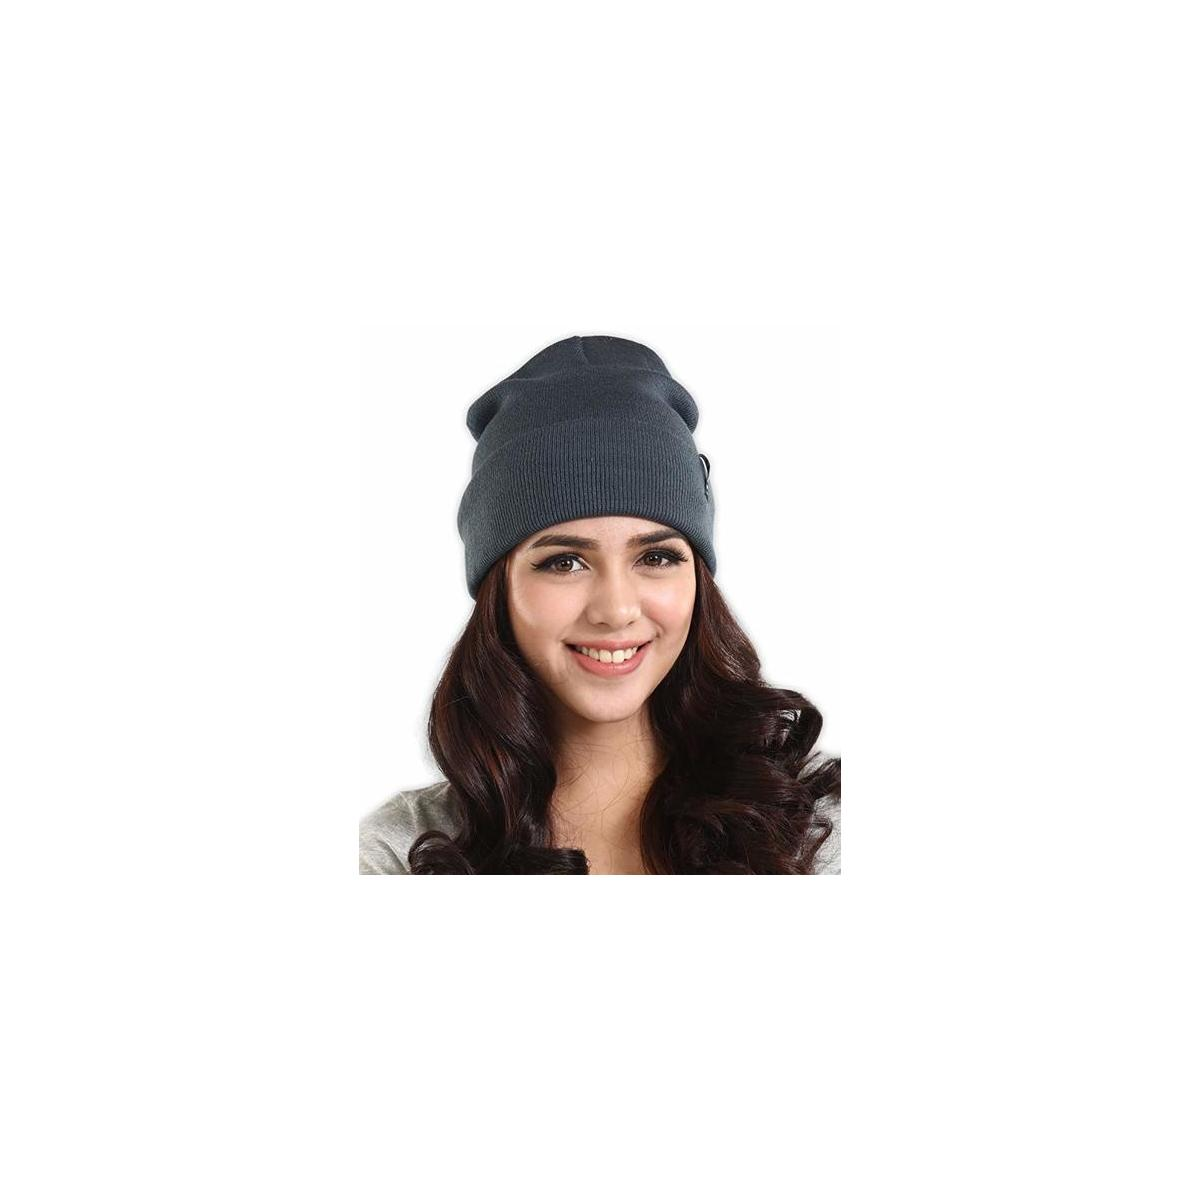 IGNITEX Cuff Beanie Watch Cap for Men and Women - Warm, Stretchy & Soft Knit Hats  [Promo is valid to all variants]